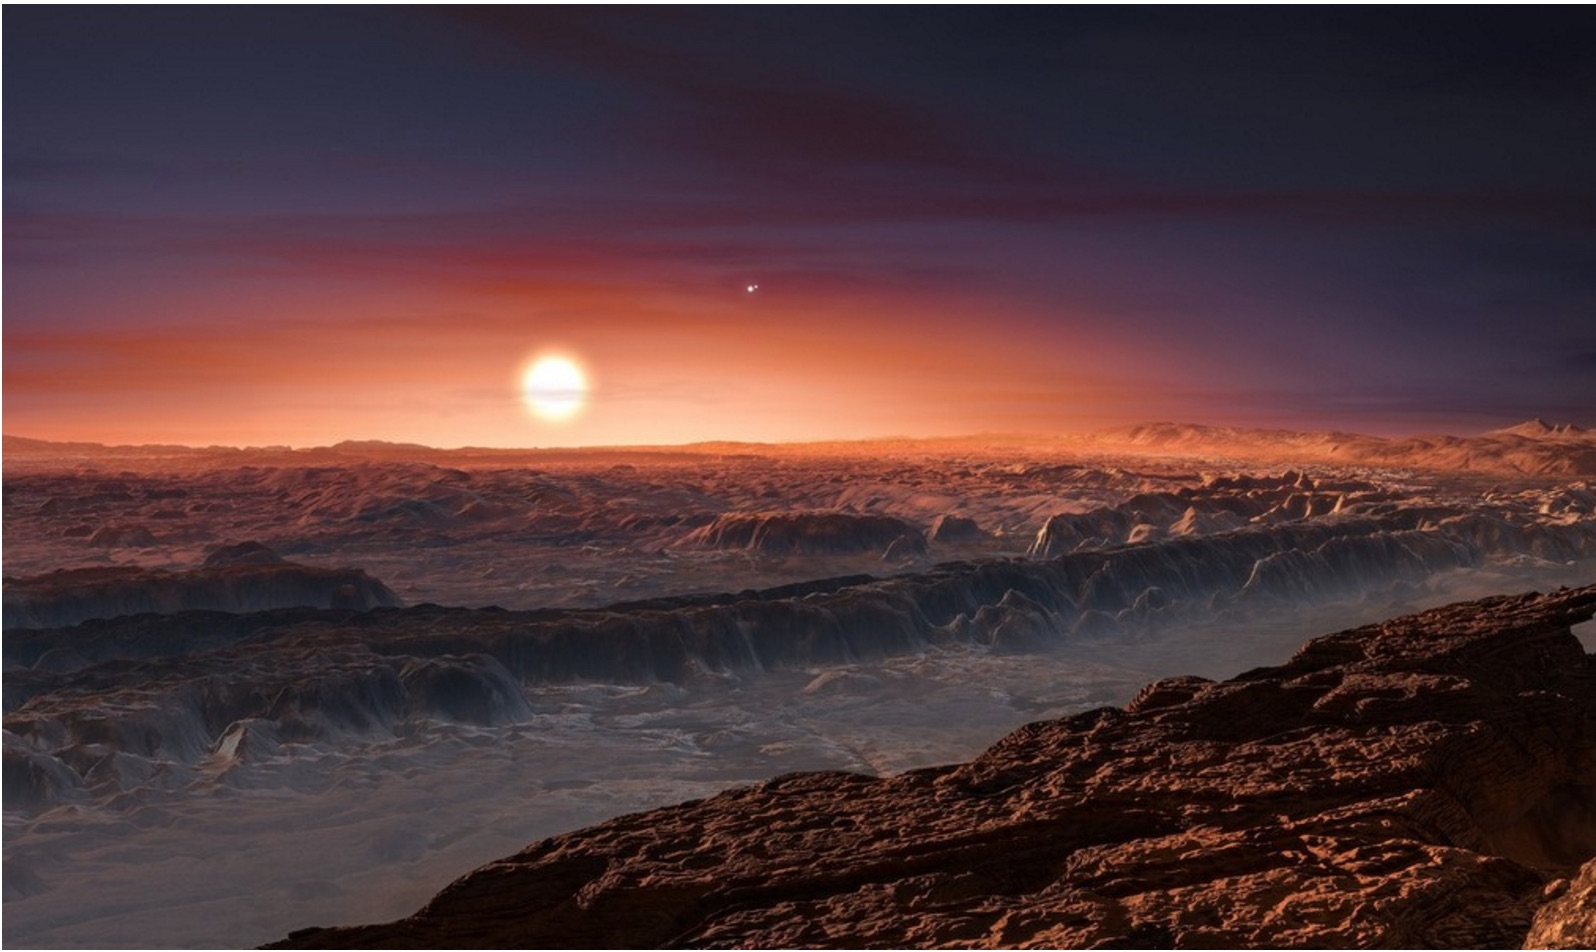 Eyeballing Proxima b: Probably Not a Second Earth